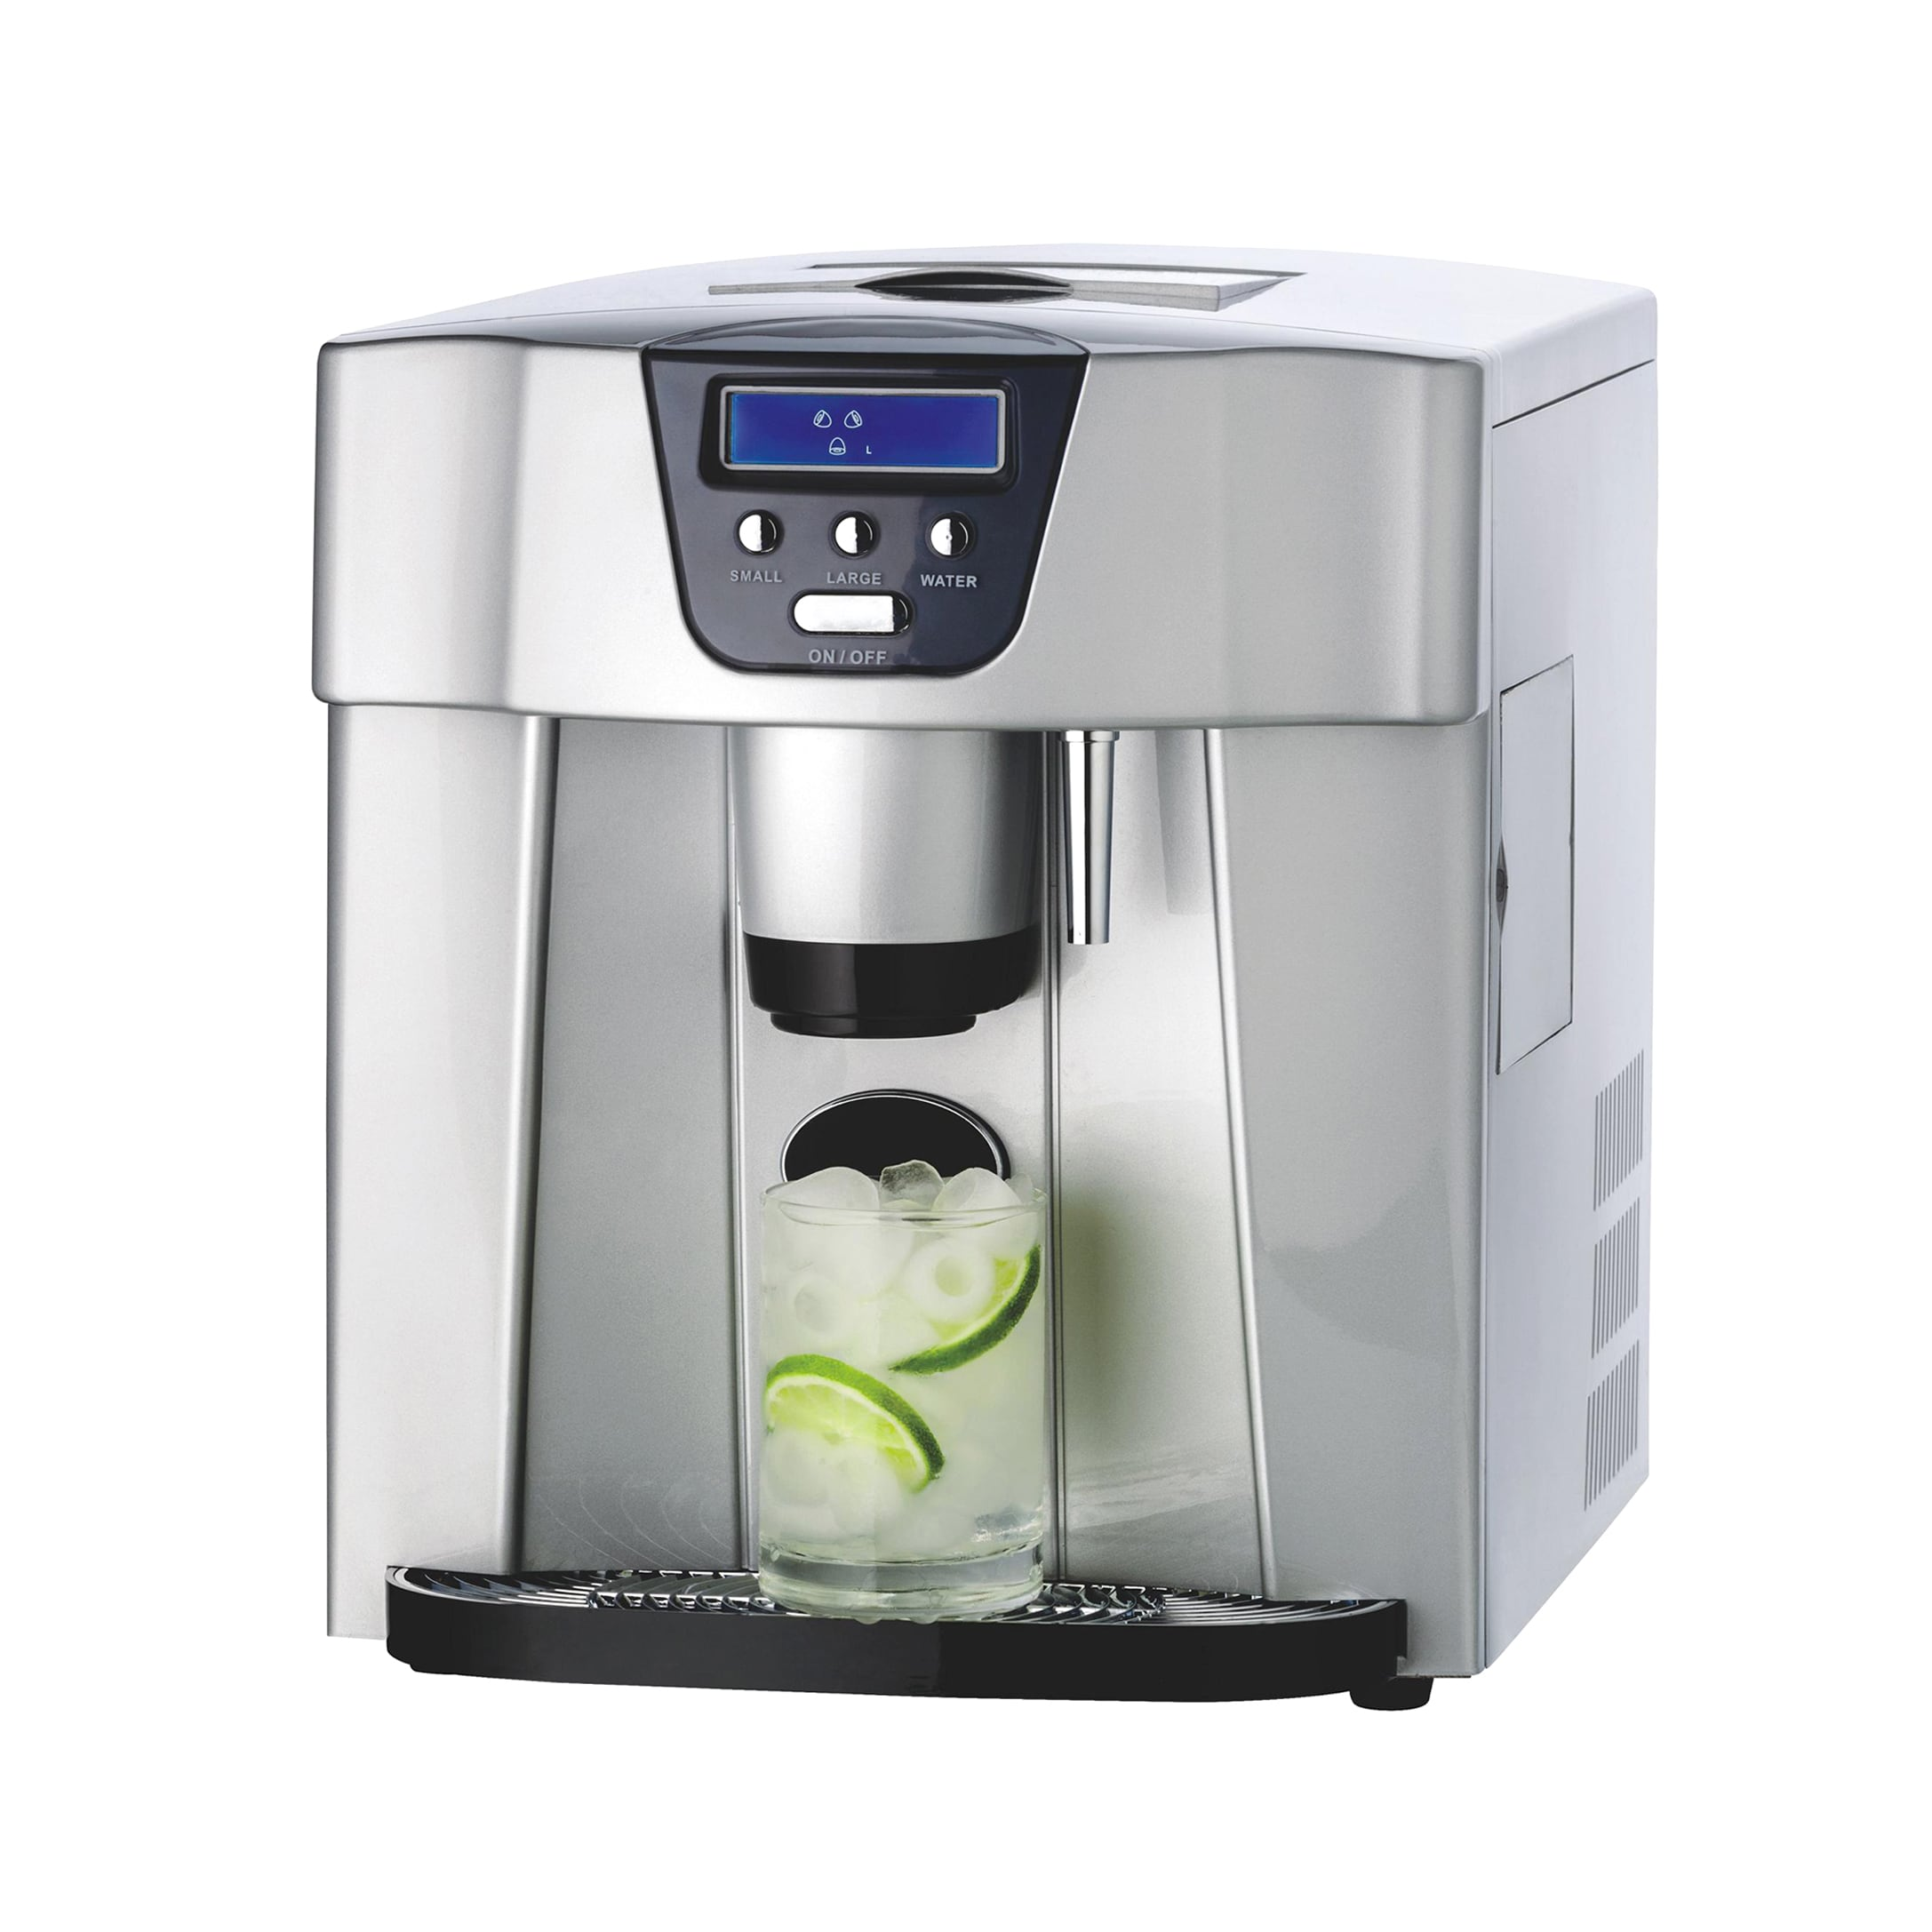 the cold best ice machine com water with throughout and top dispenser line counter countertops gallon cooler hot jug maker innovative wonderful portable on plus amazon countertop unique